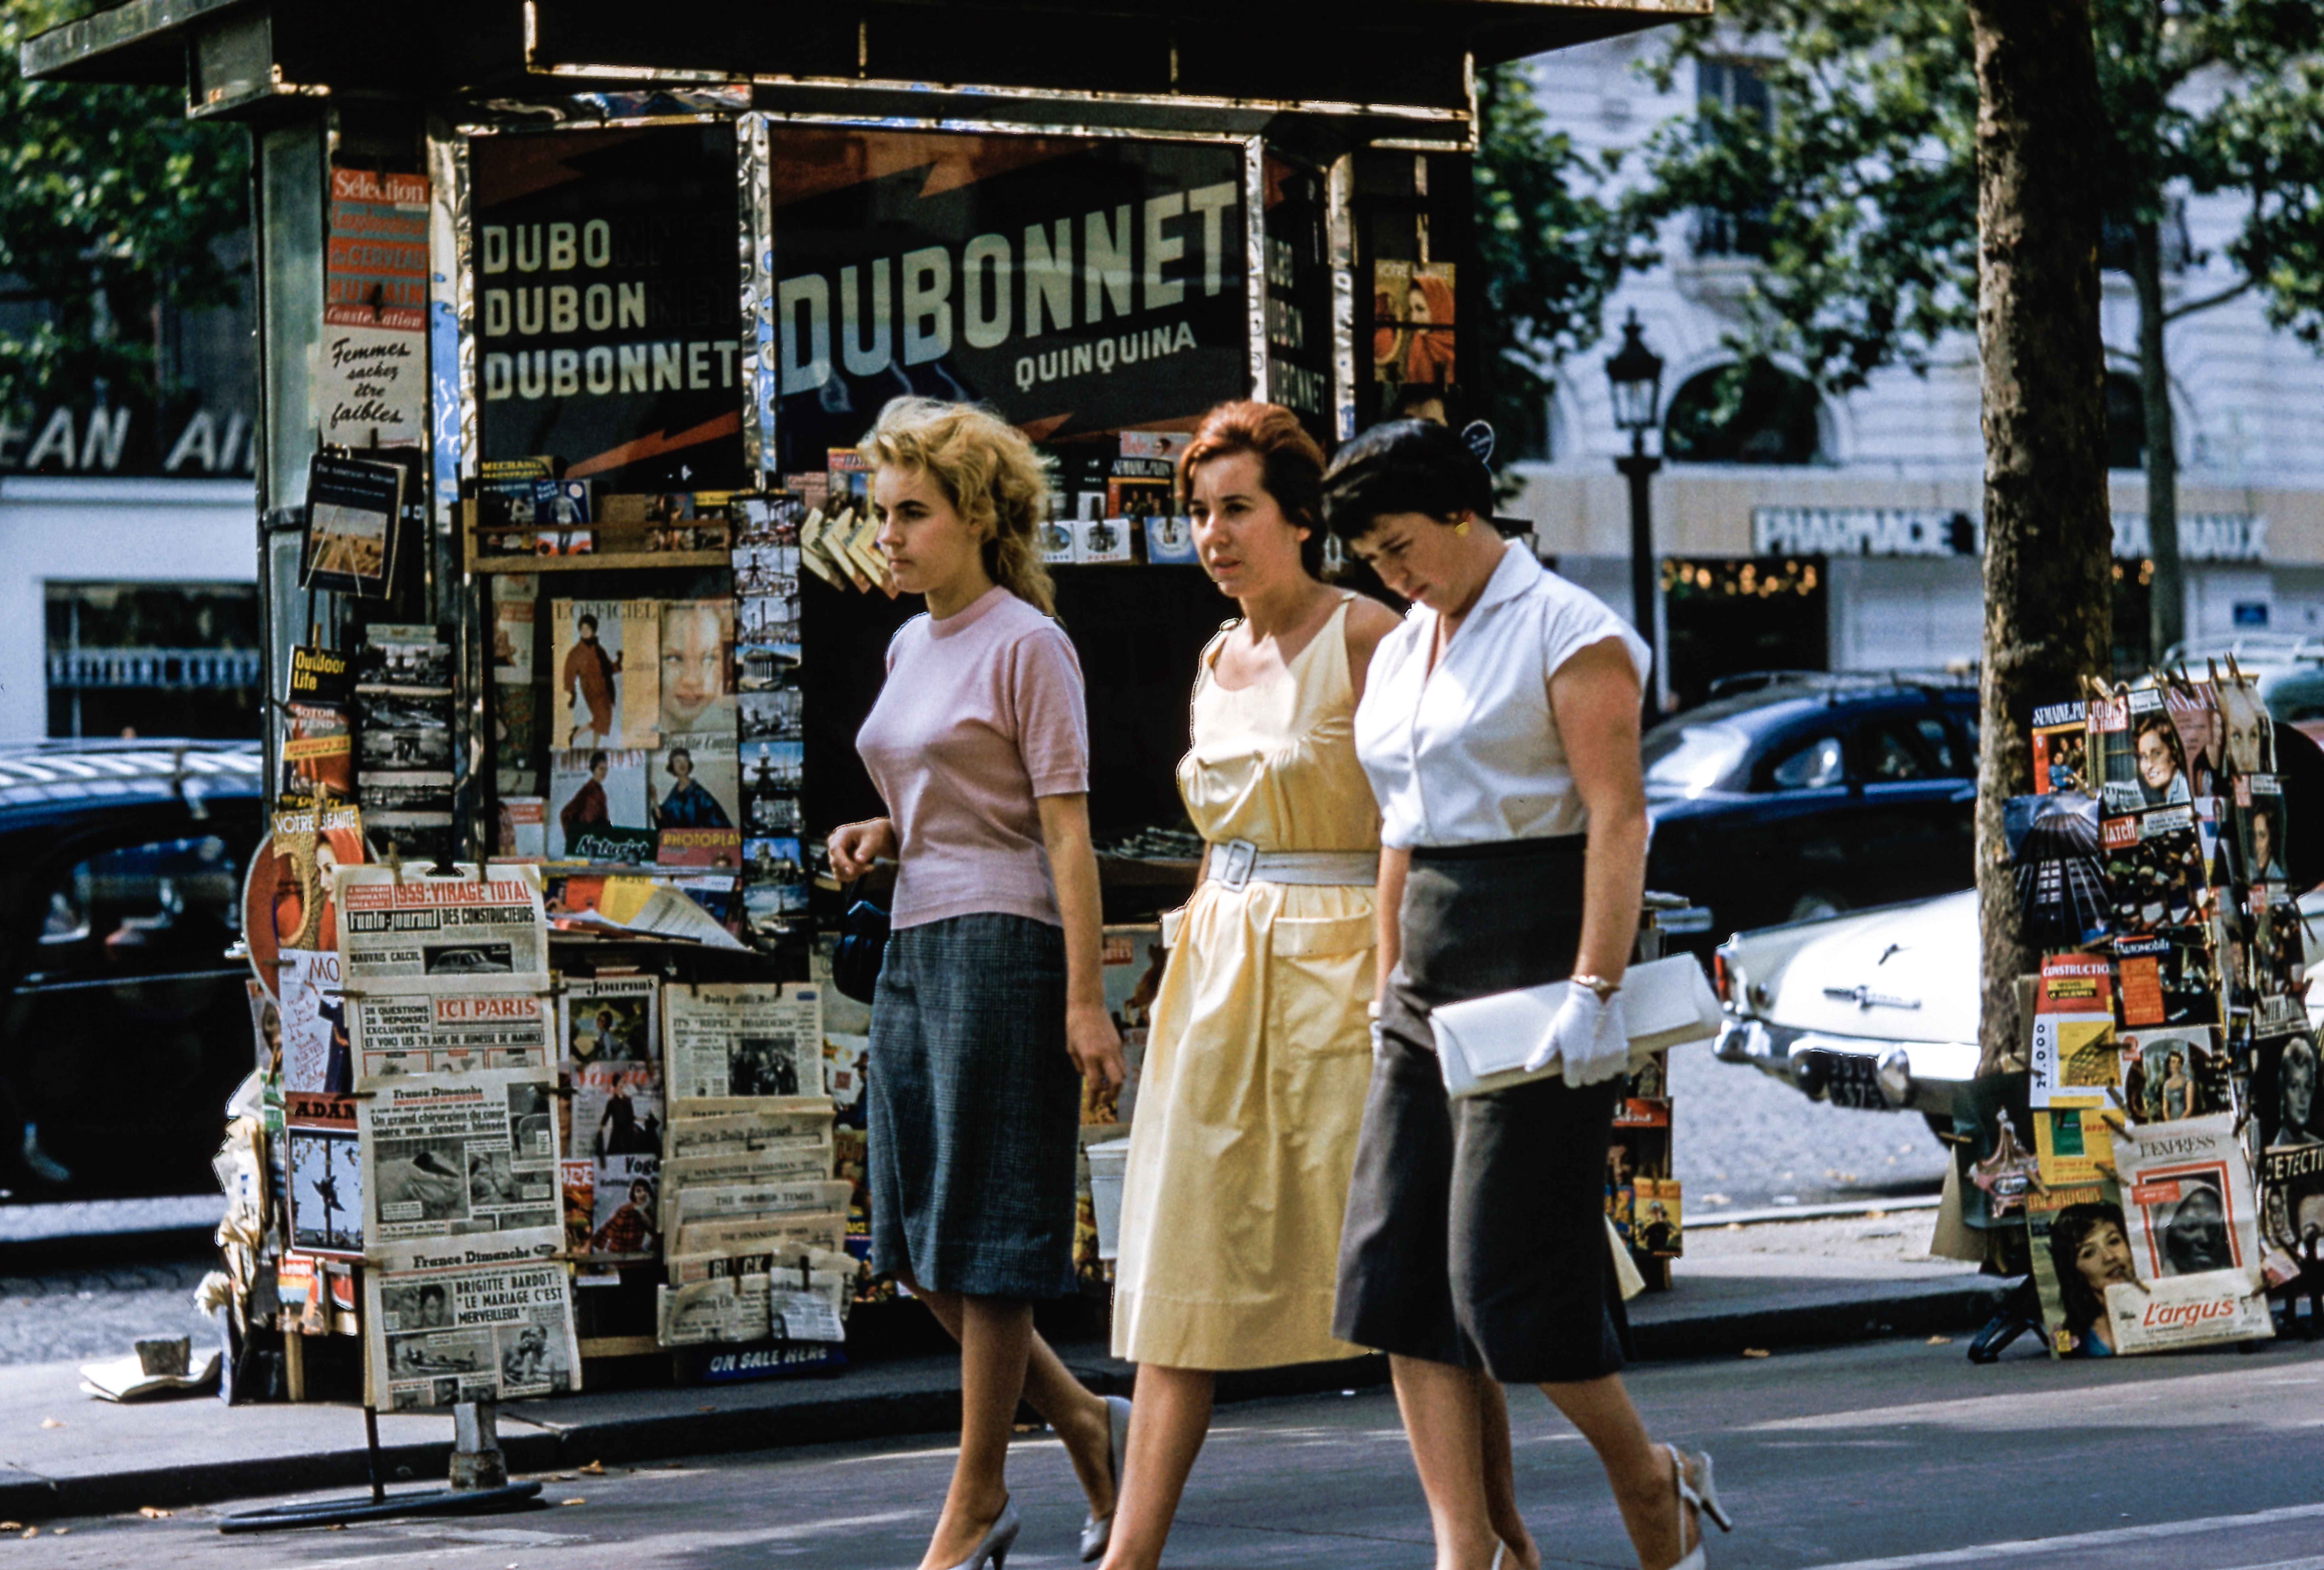 Three women in retro clothes walk on the sidewalk by a news stand